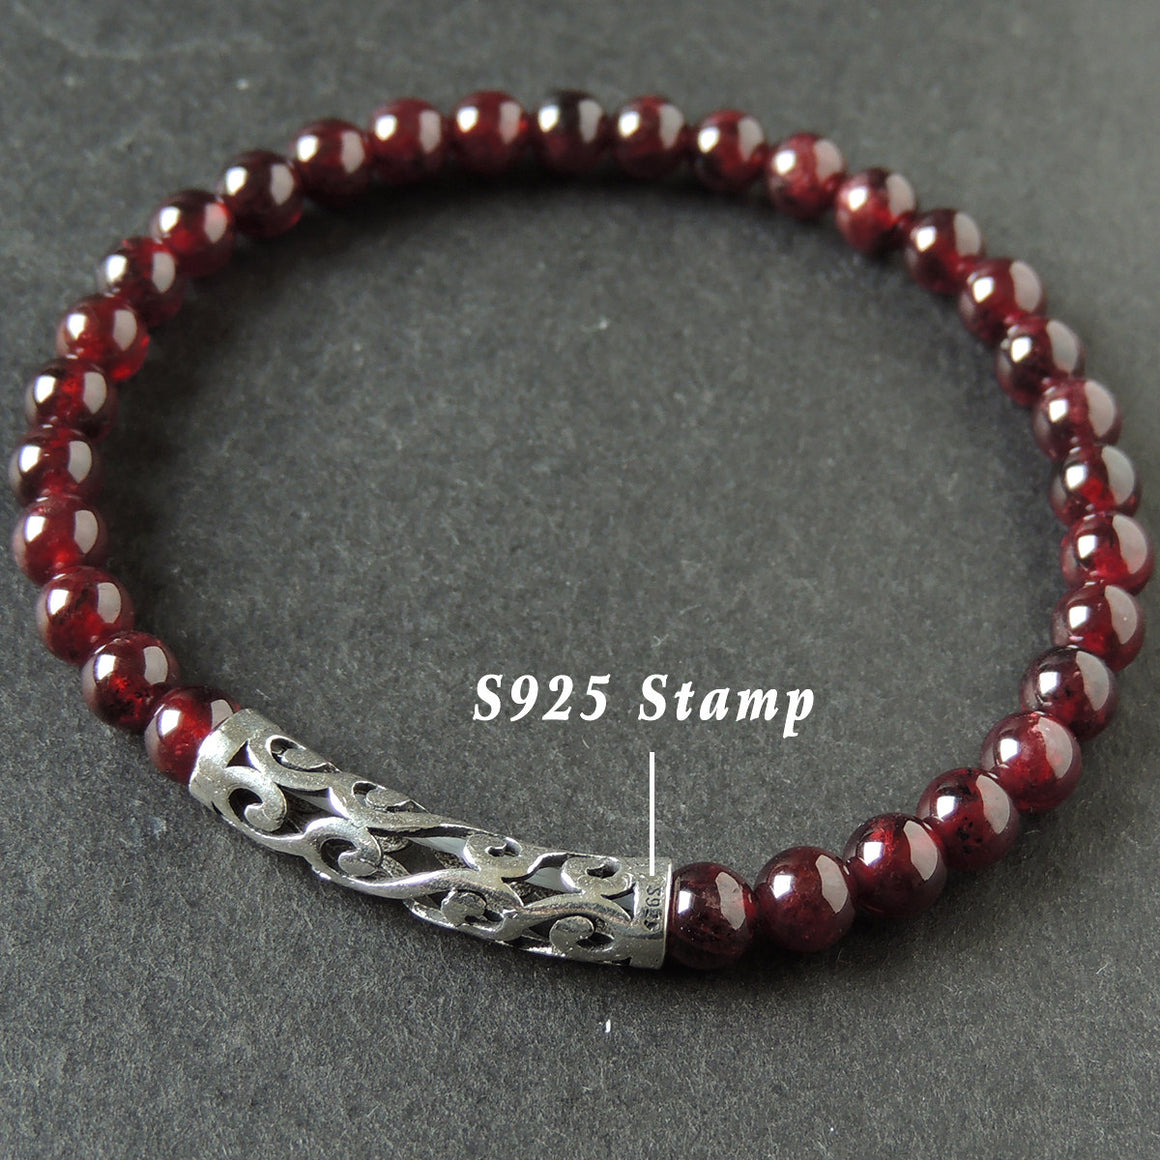 5.5mm Garnet Healing Gemstone Bracelet with S925 Sterling Silver Wave Charm - Handmade by Gem & Silver BR469